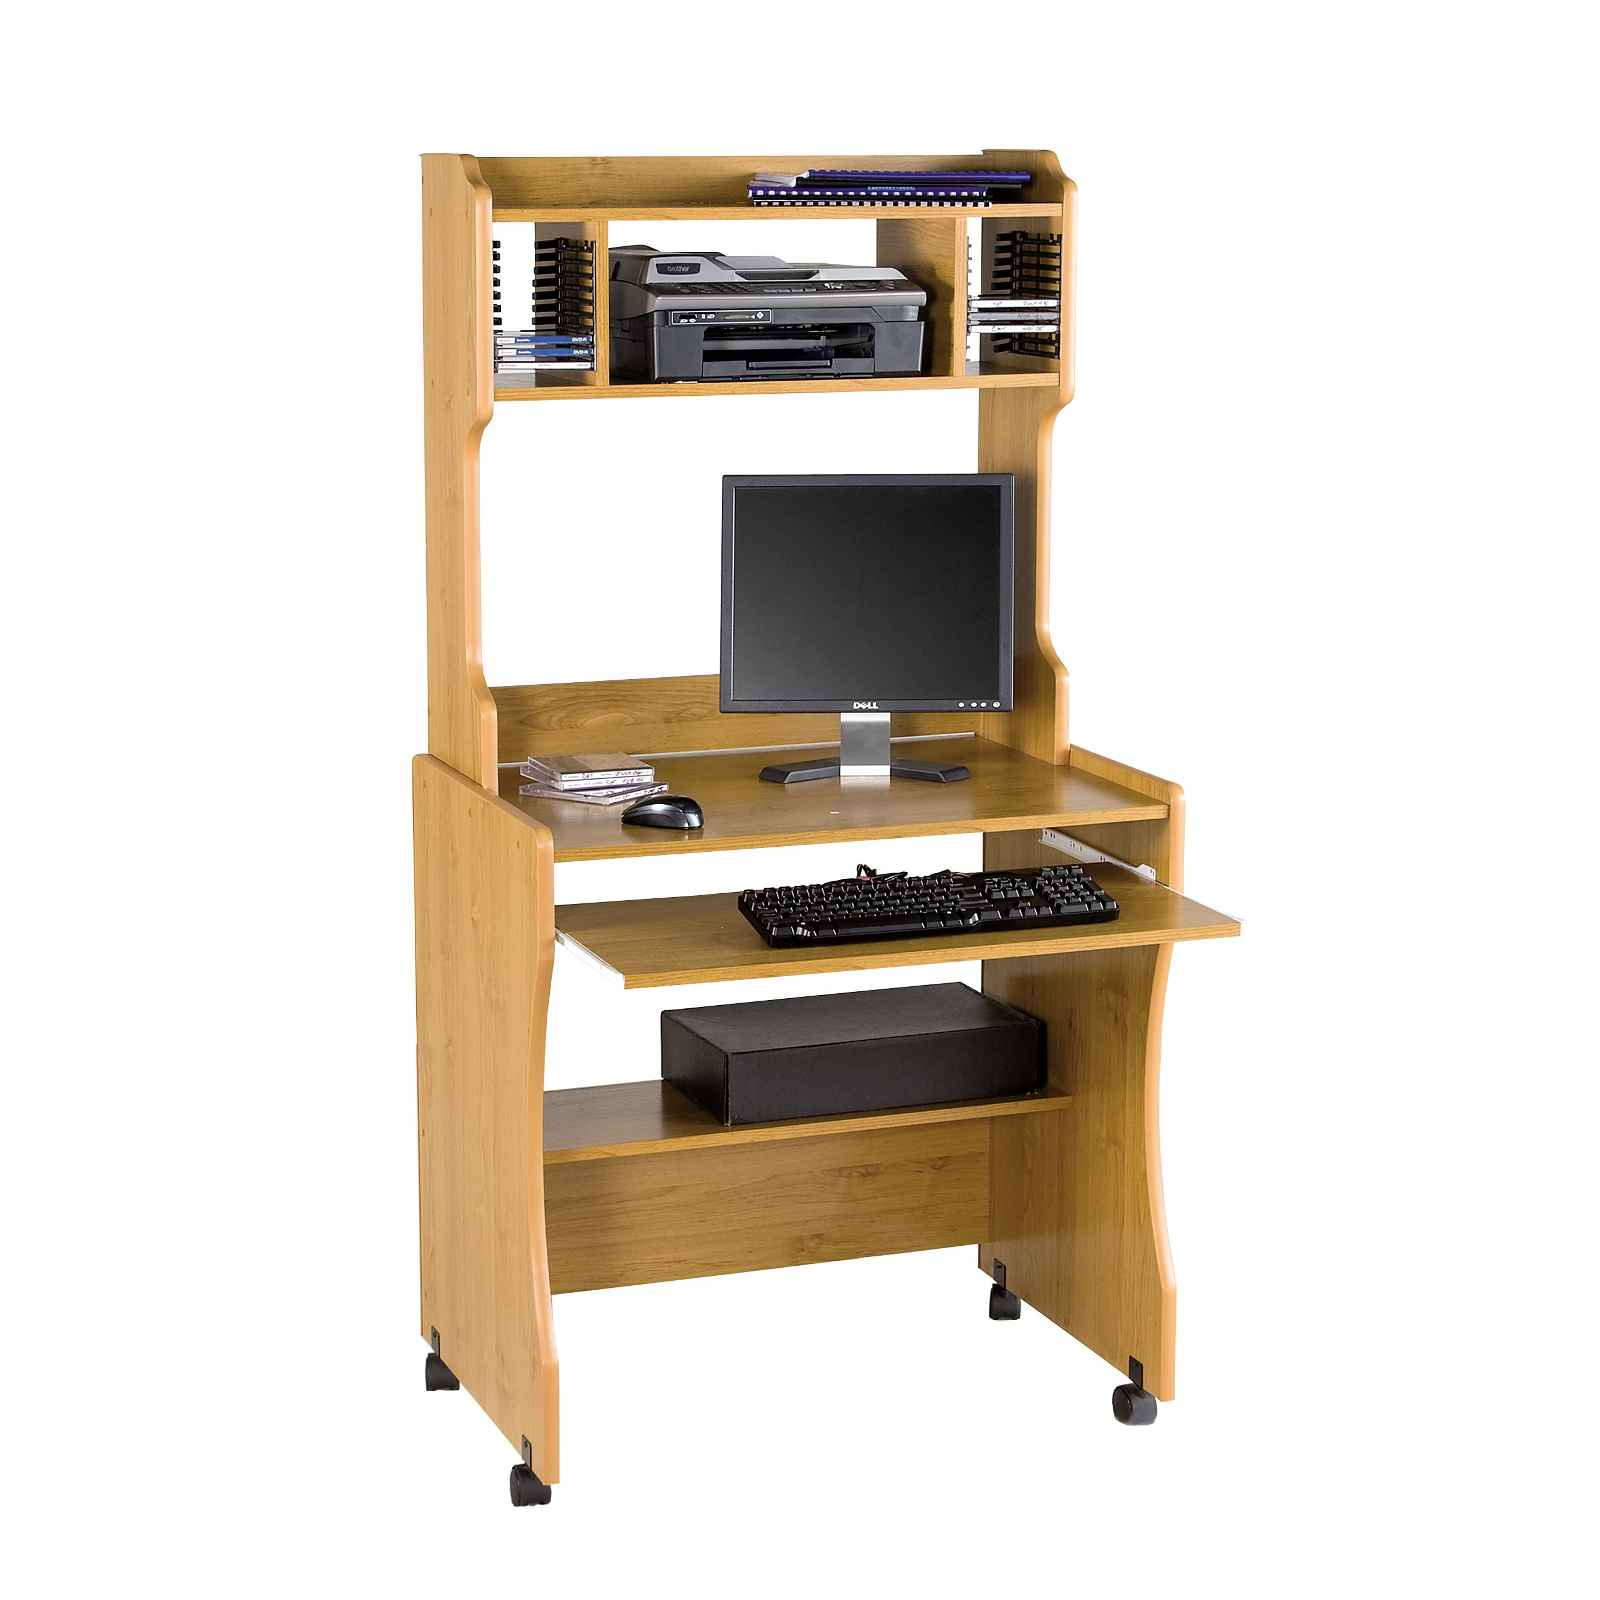 Solid Wood Ergonomic Computer Workstation with Hutch